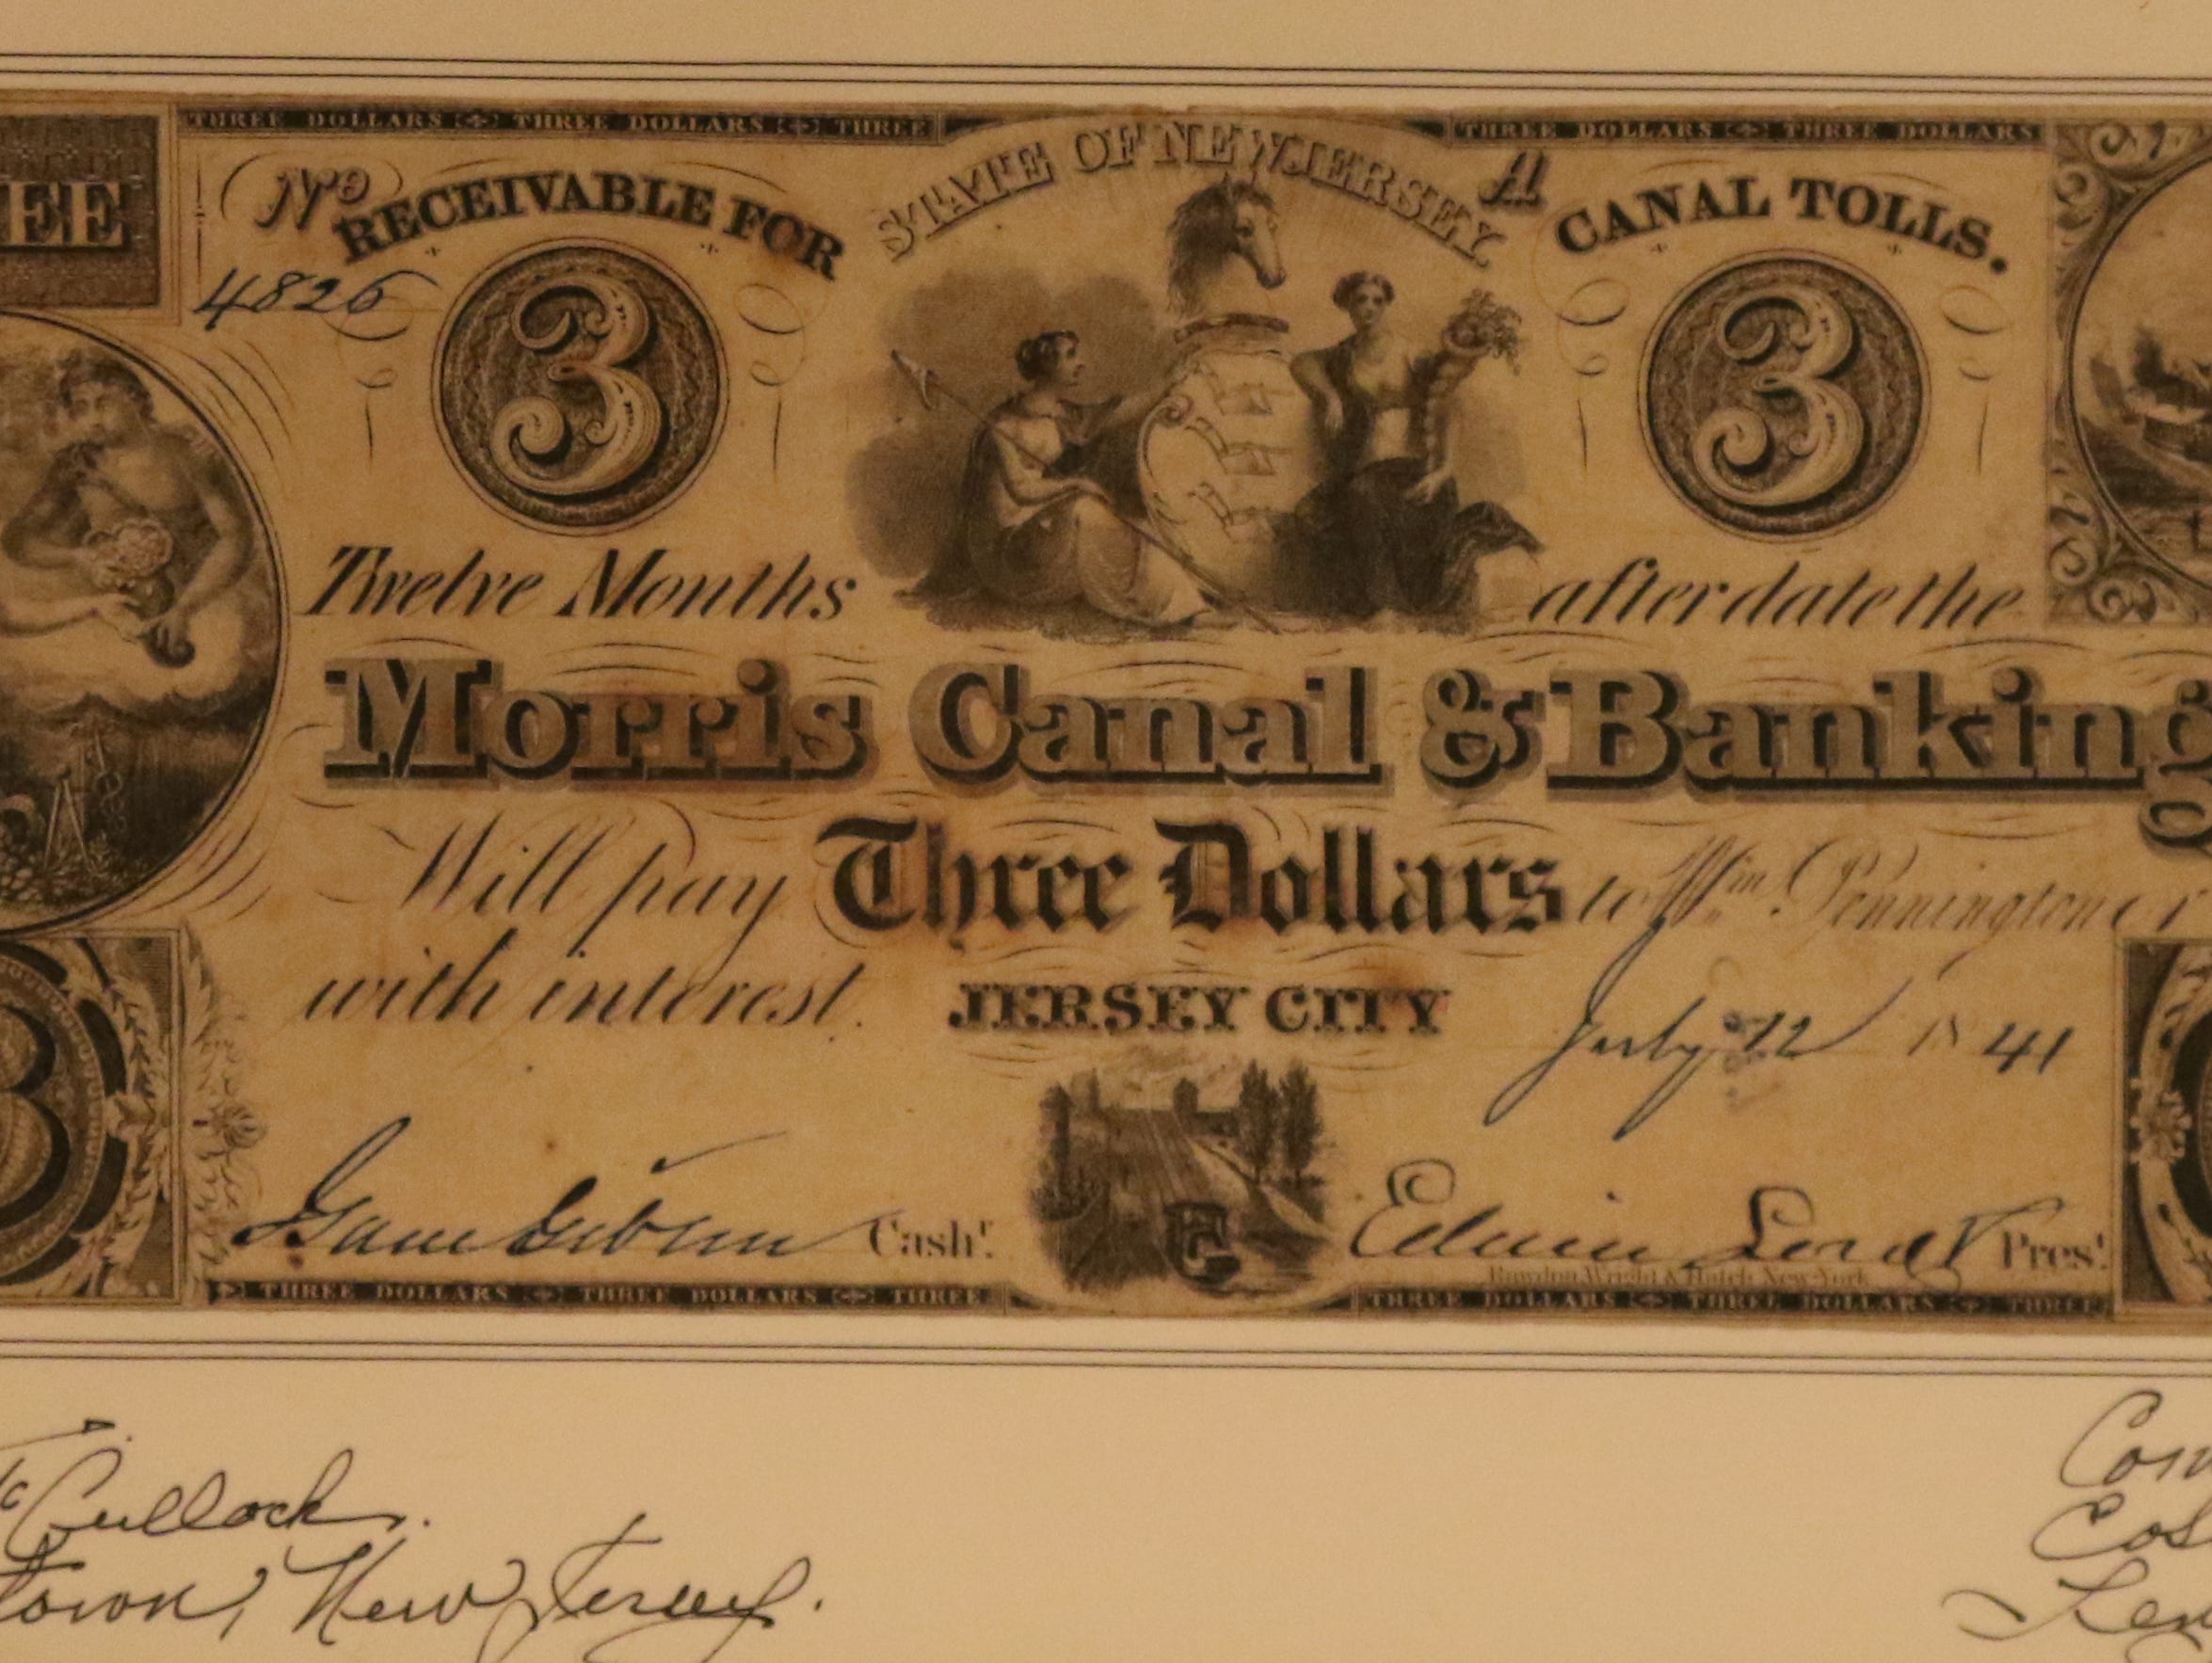 Money used to fund the Morris Canal and Banking Company.